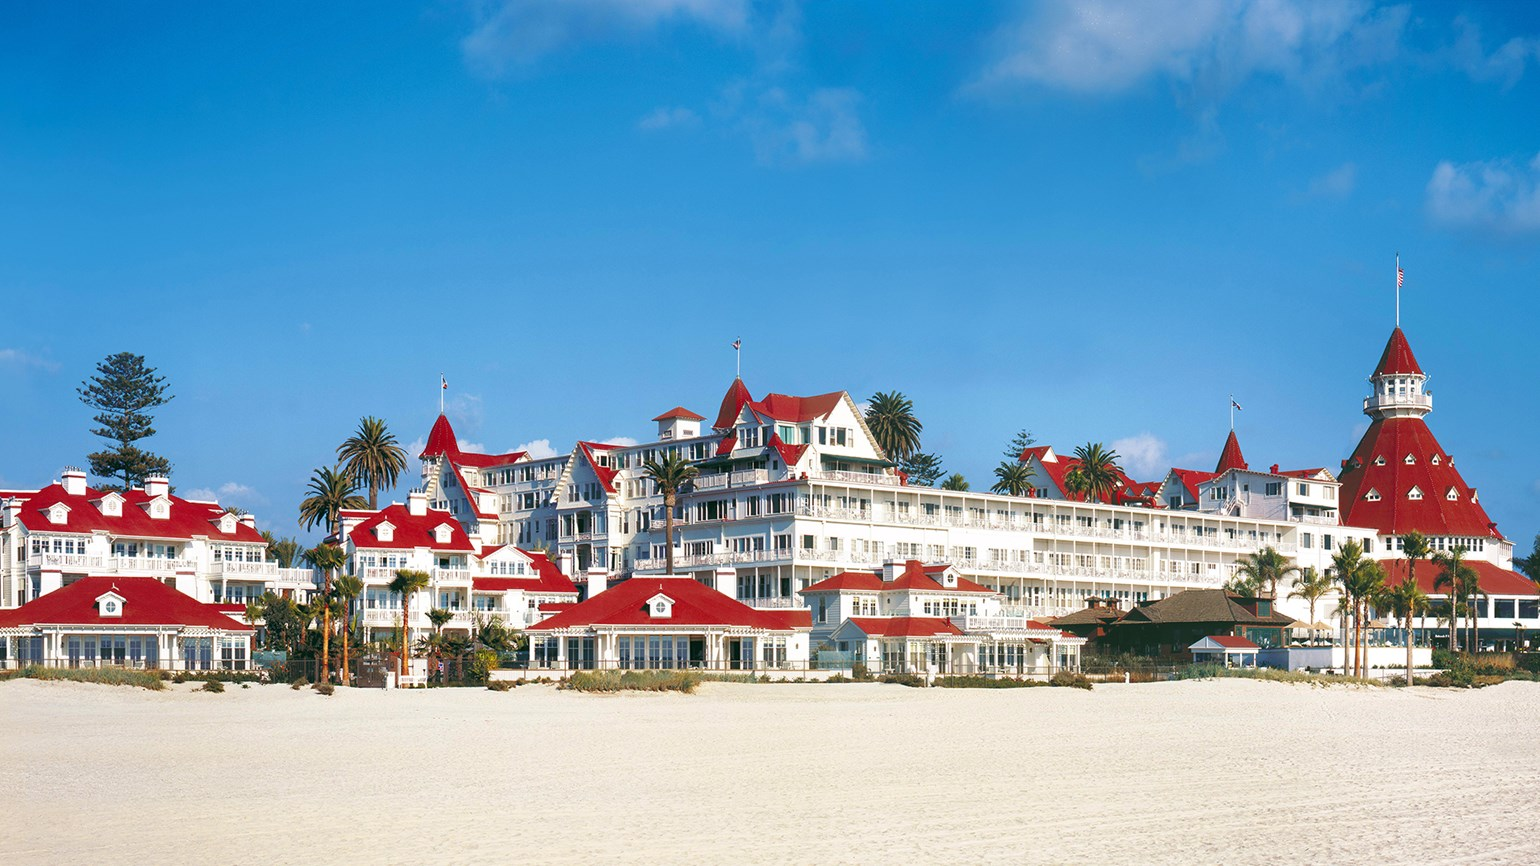 Hilton S Curio Adds Iconic Hotel Del Coronado Travel Weekly